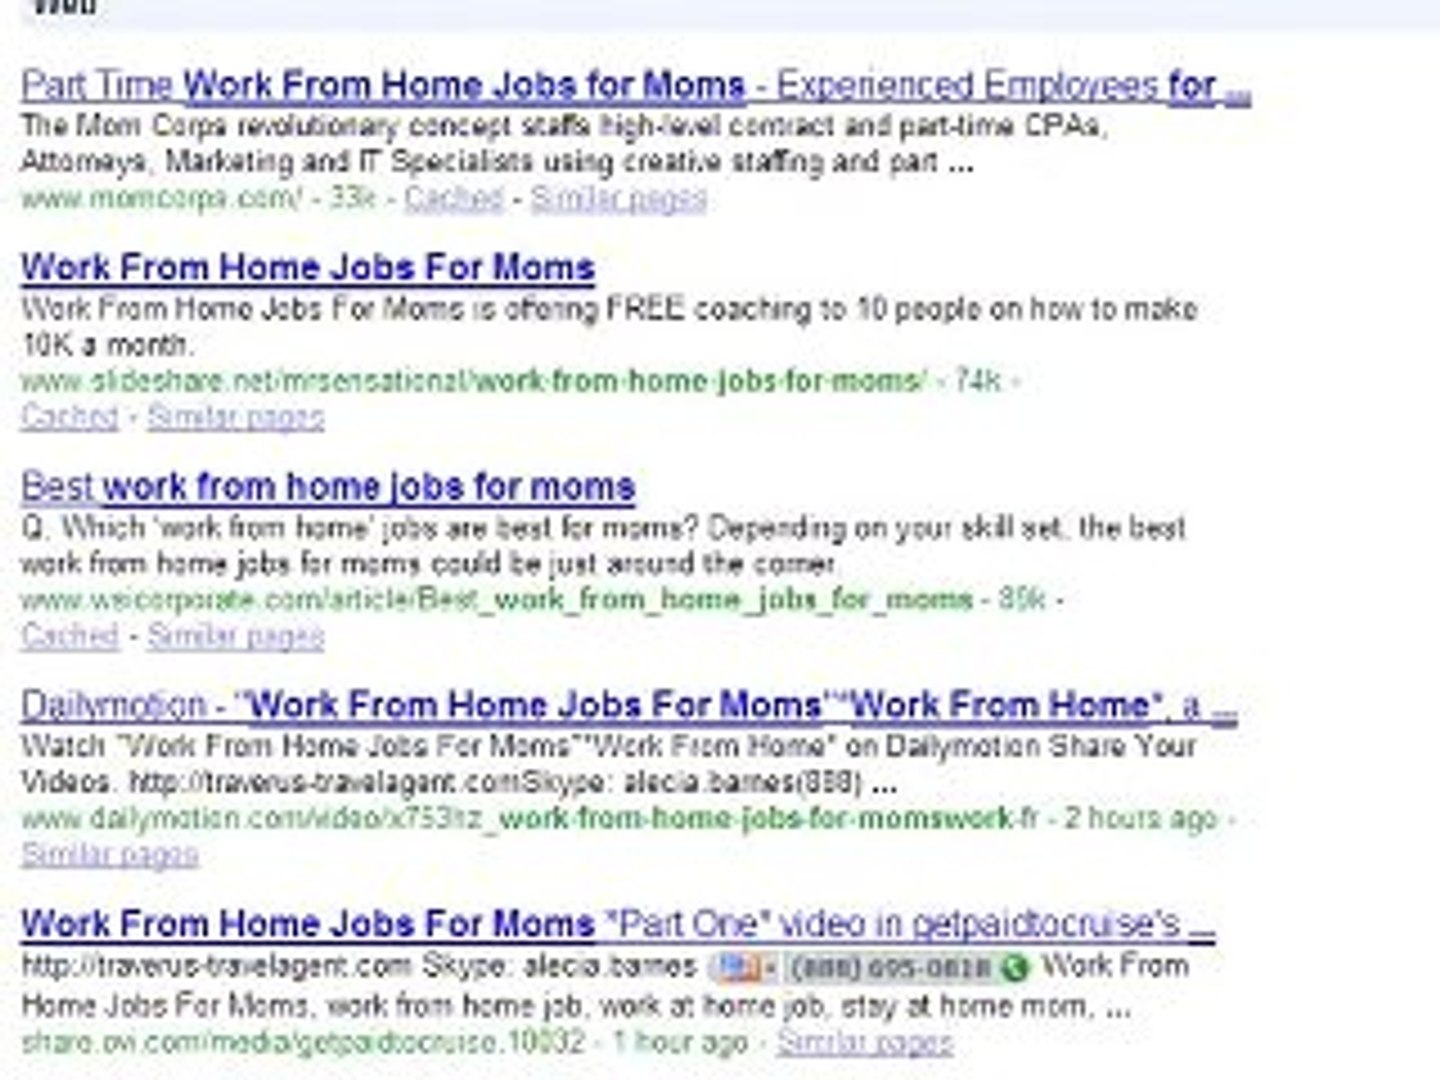 Work From Home Jobs For Moms Part Two